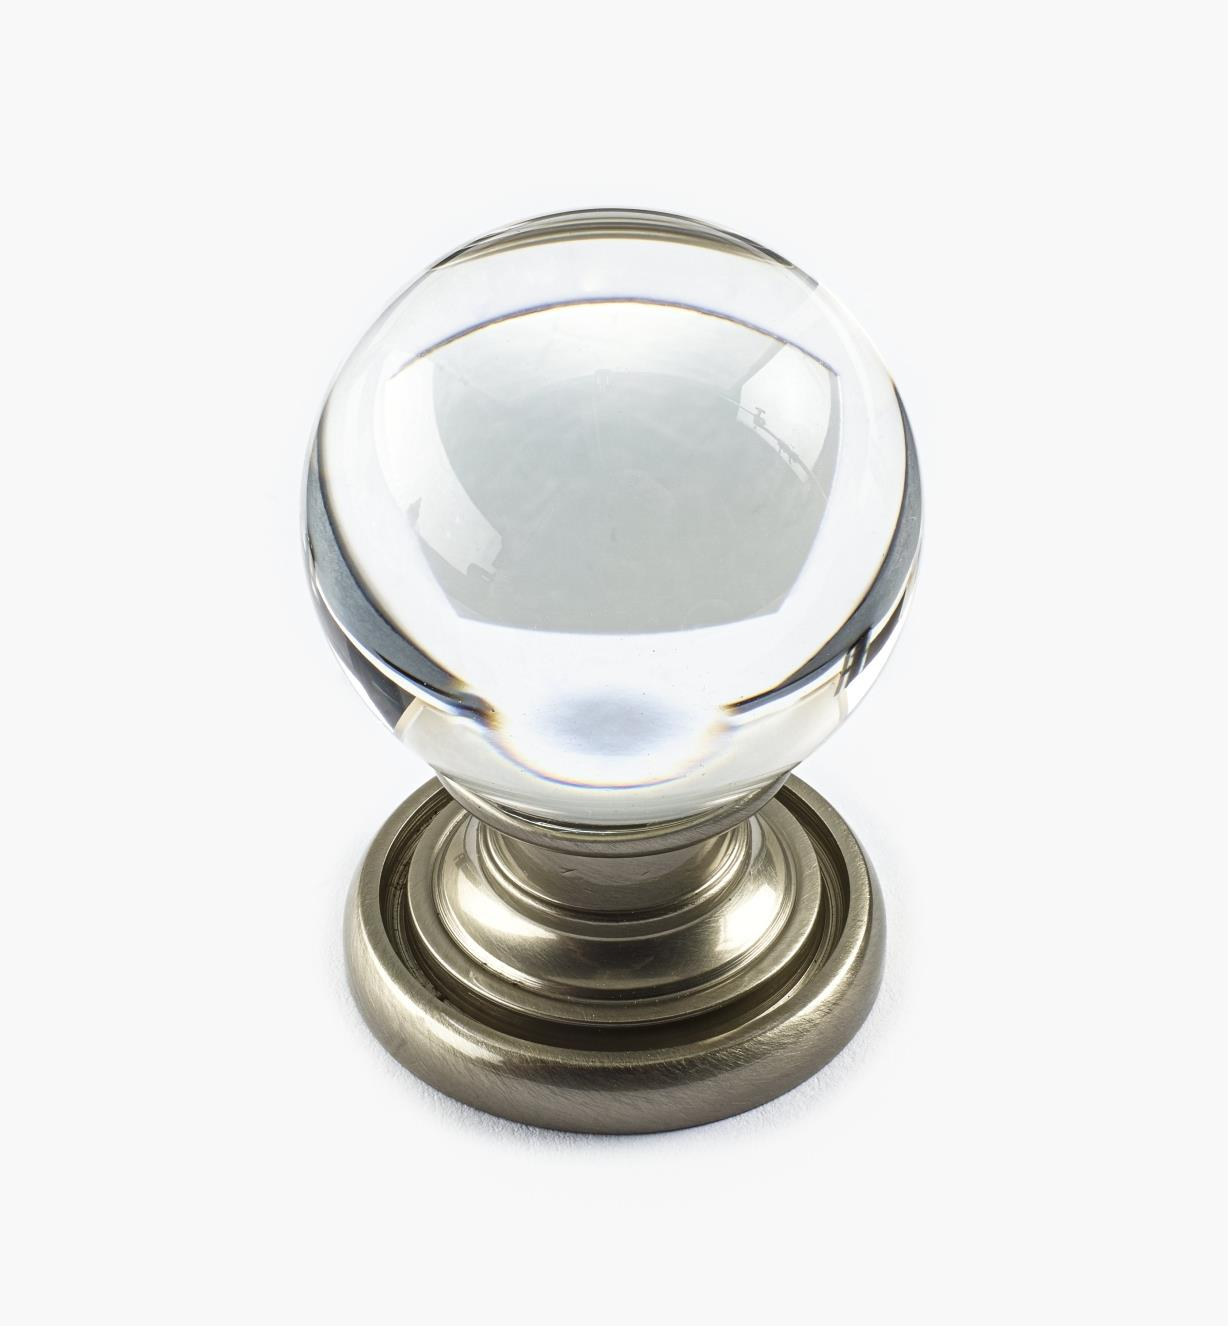 01A3837 - Smooth Glass Globe Knob, 29mm